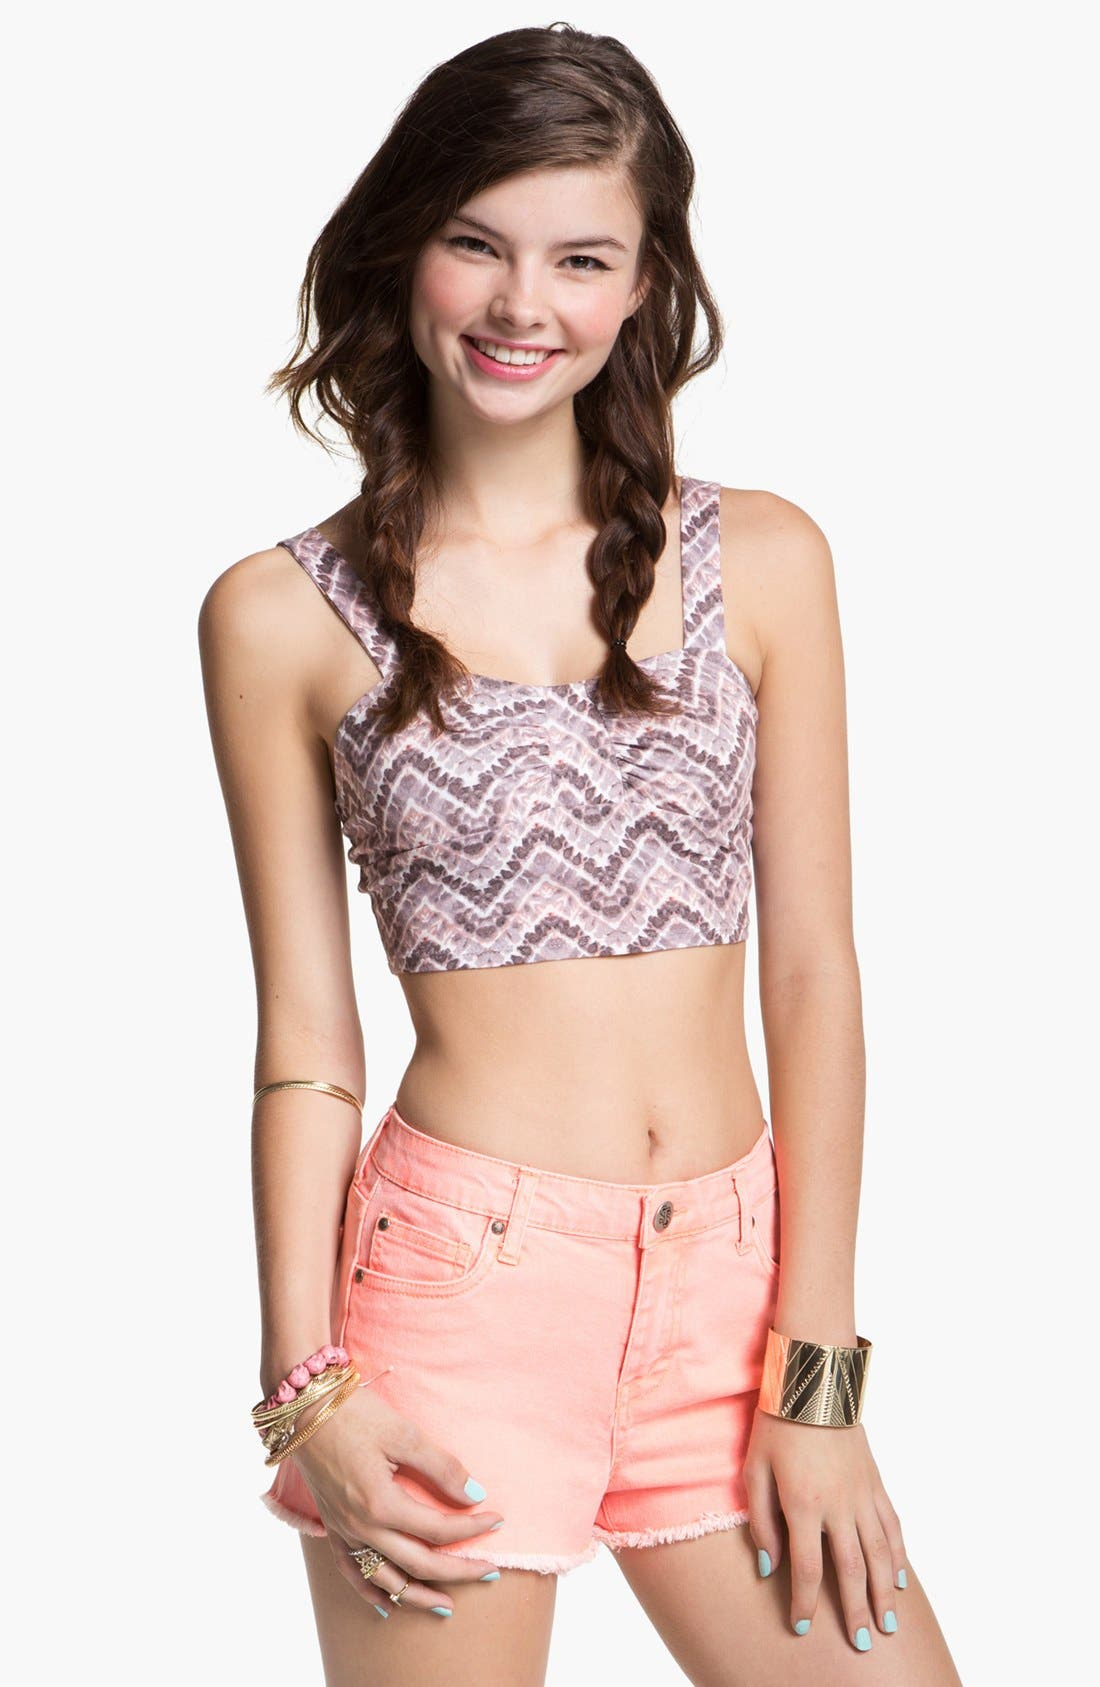 Alternate Image 1 Selected - Painted Threads Print Long Line Bralette (Juniors)